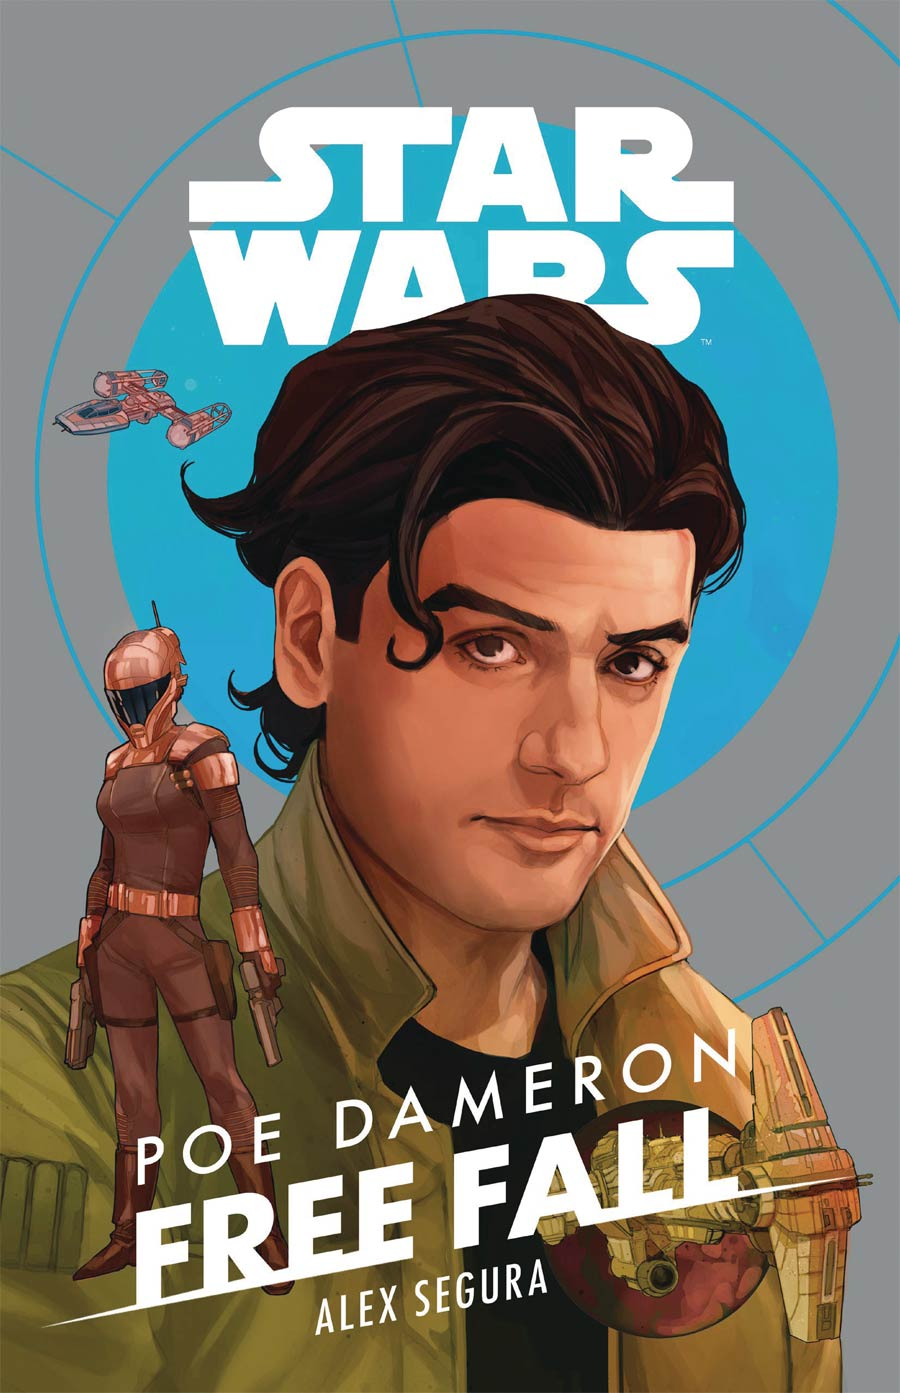 Star Wars Poe Dameron Free Fall Novel HC